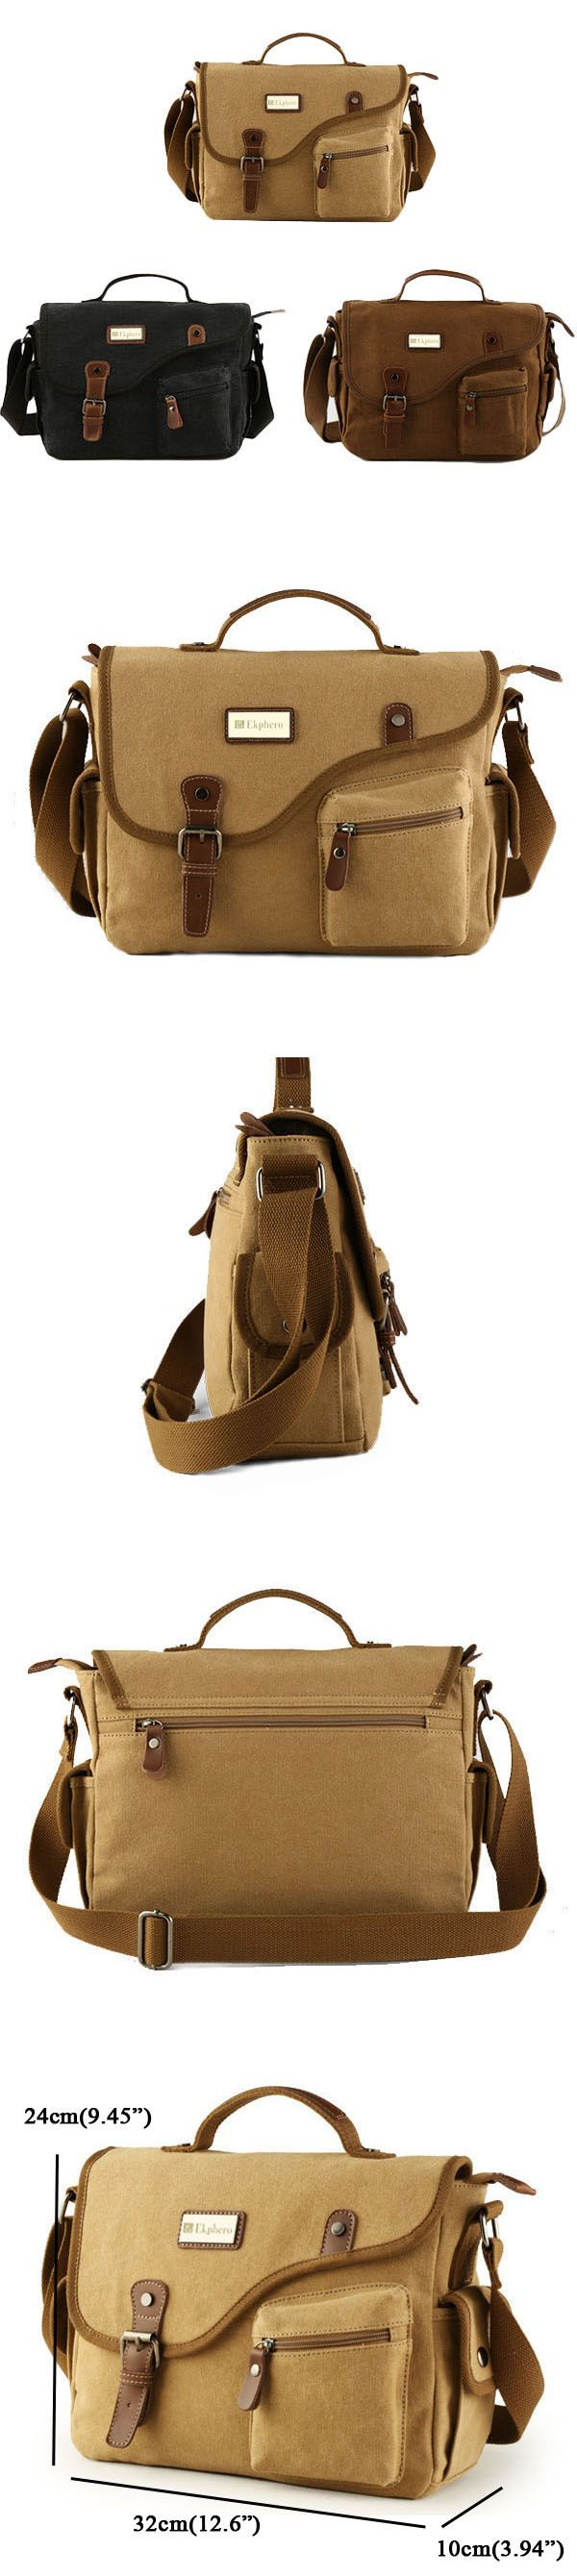 Ekphero® Men Canvas Casual Big Khaki Black Outdoor Shoulder Crossbody Bag Handbag